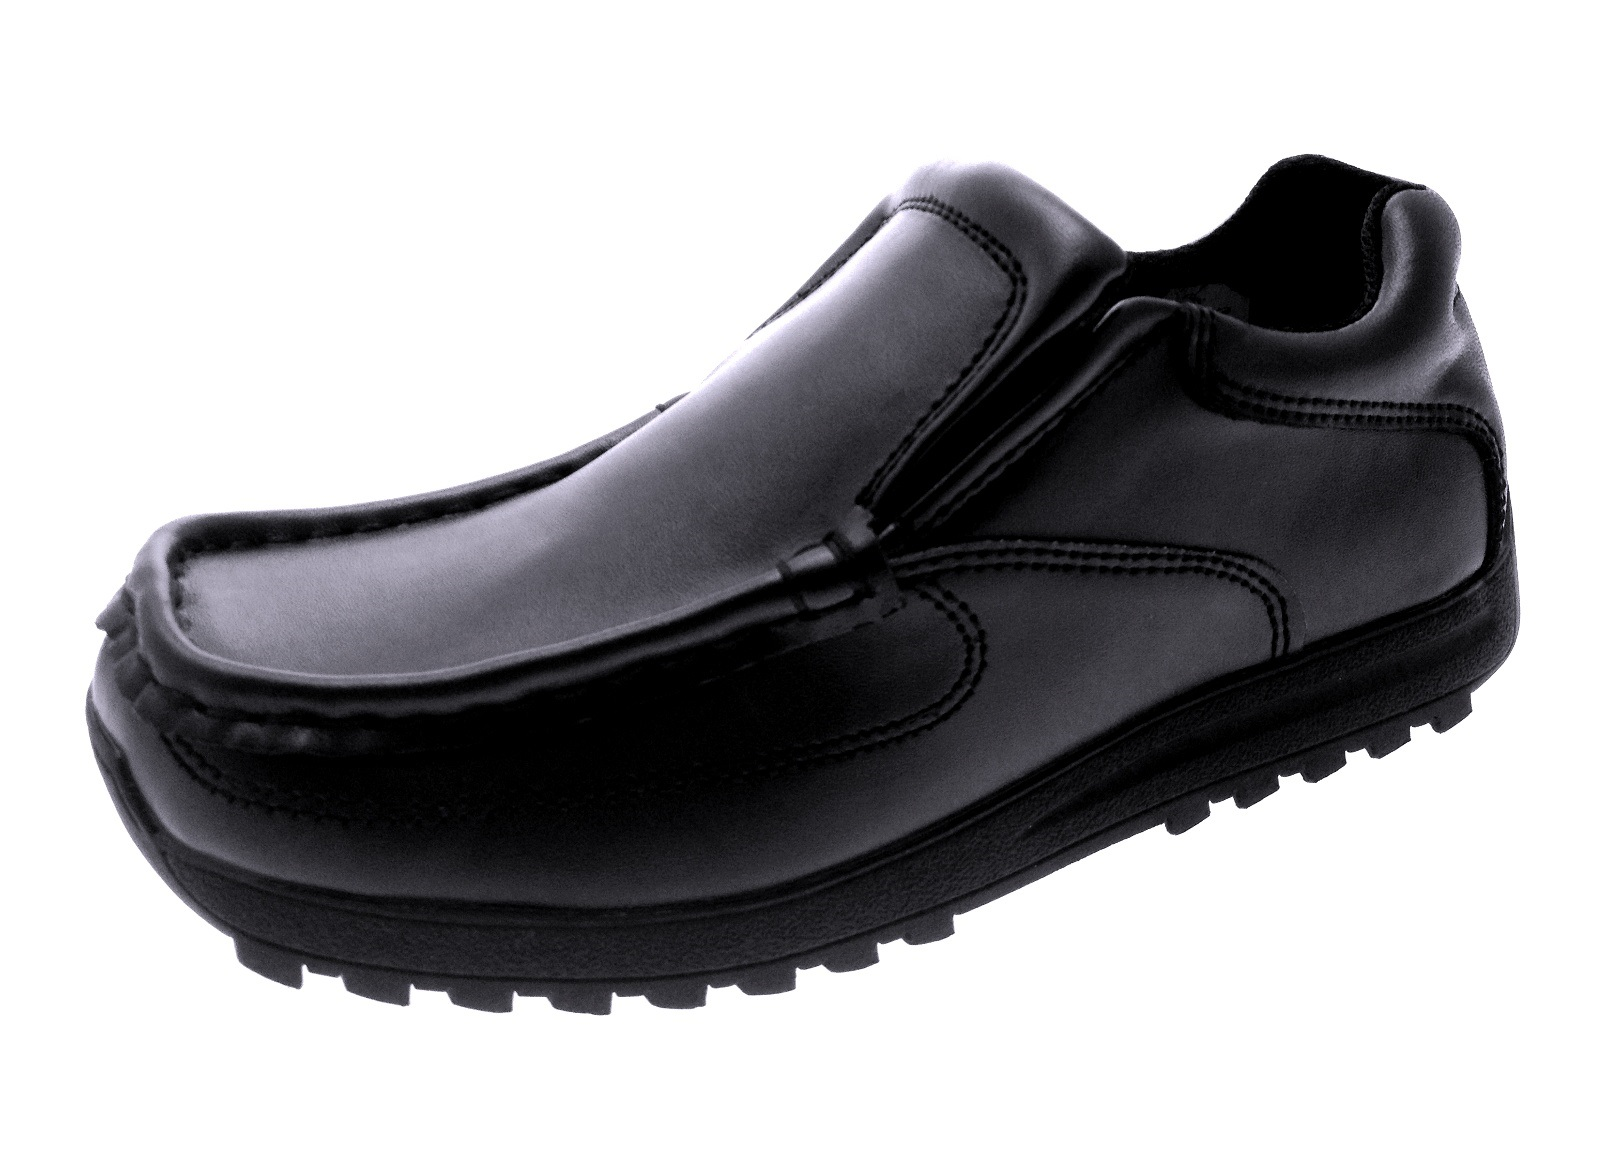 Mens Boys Kids Black Leather School Shoes Work Loafers ...